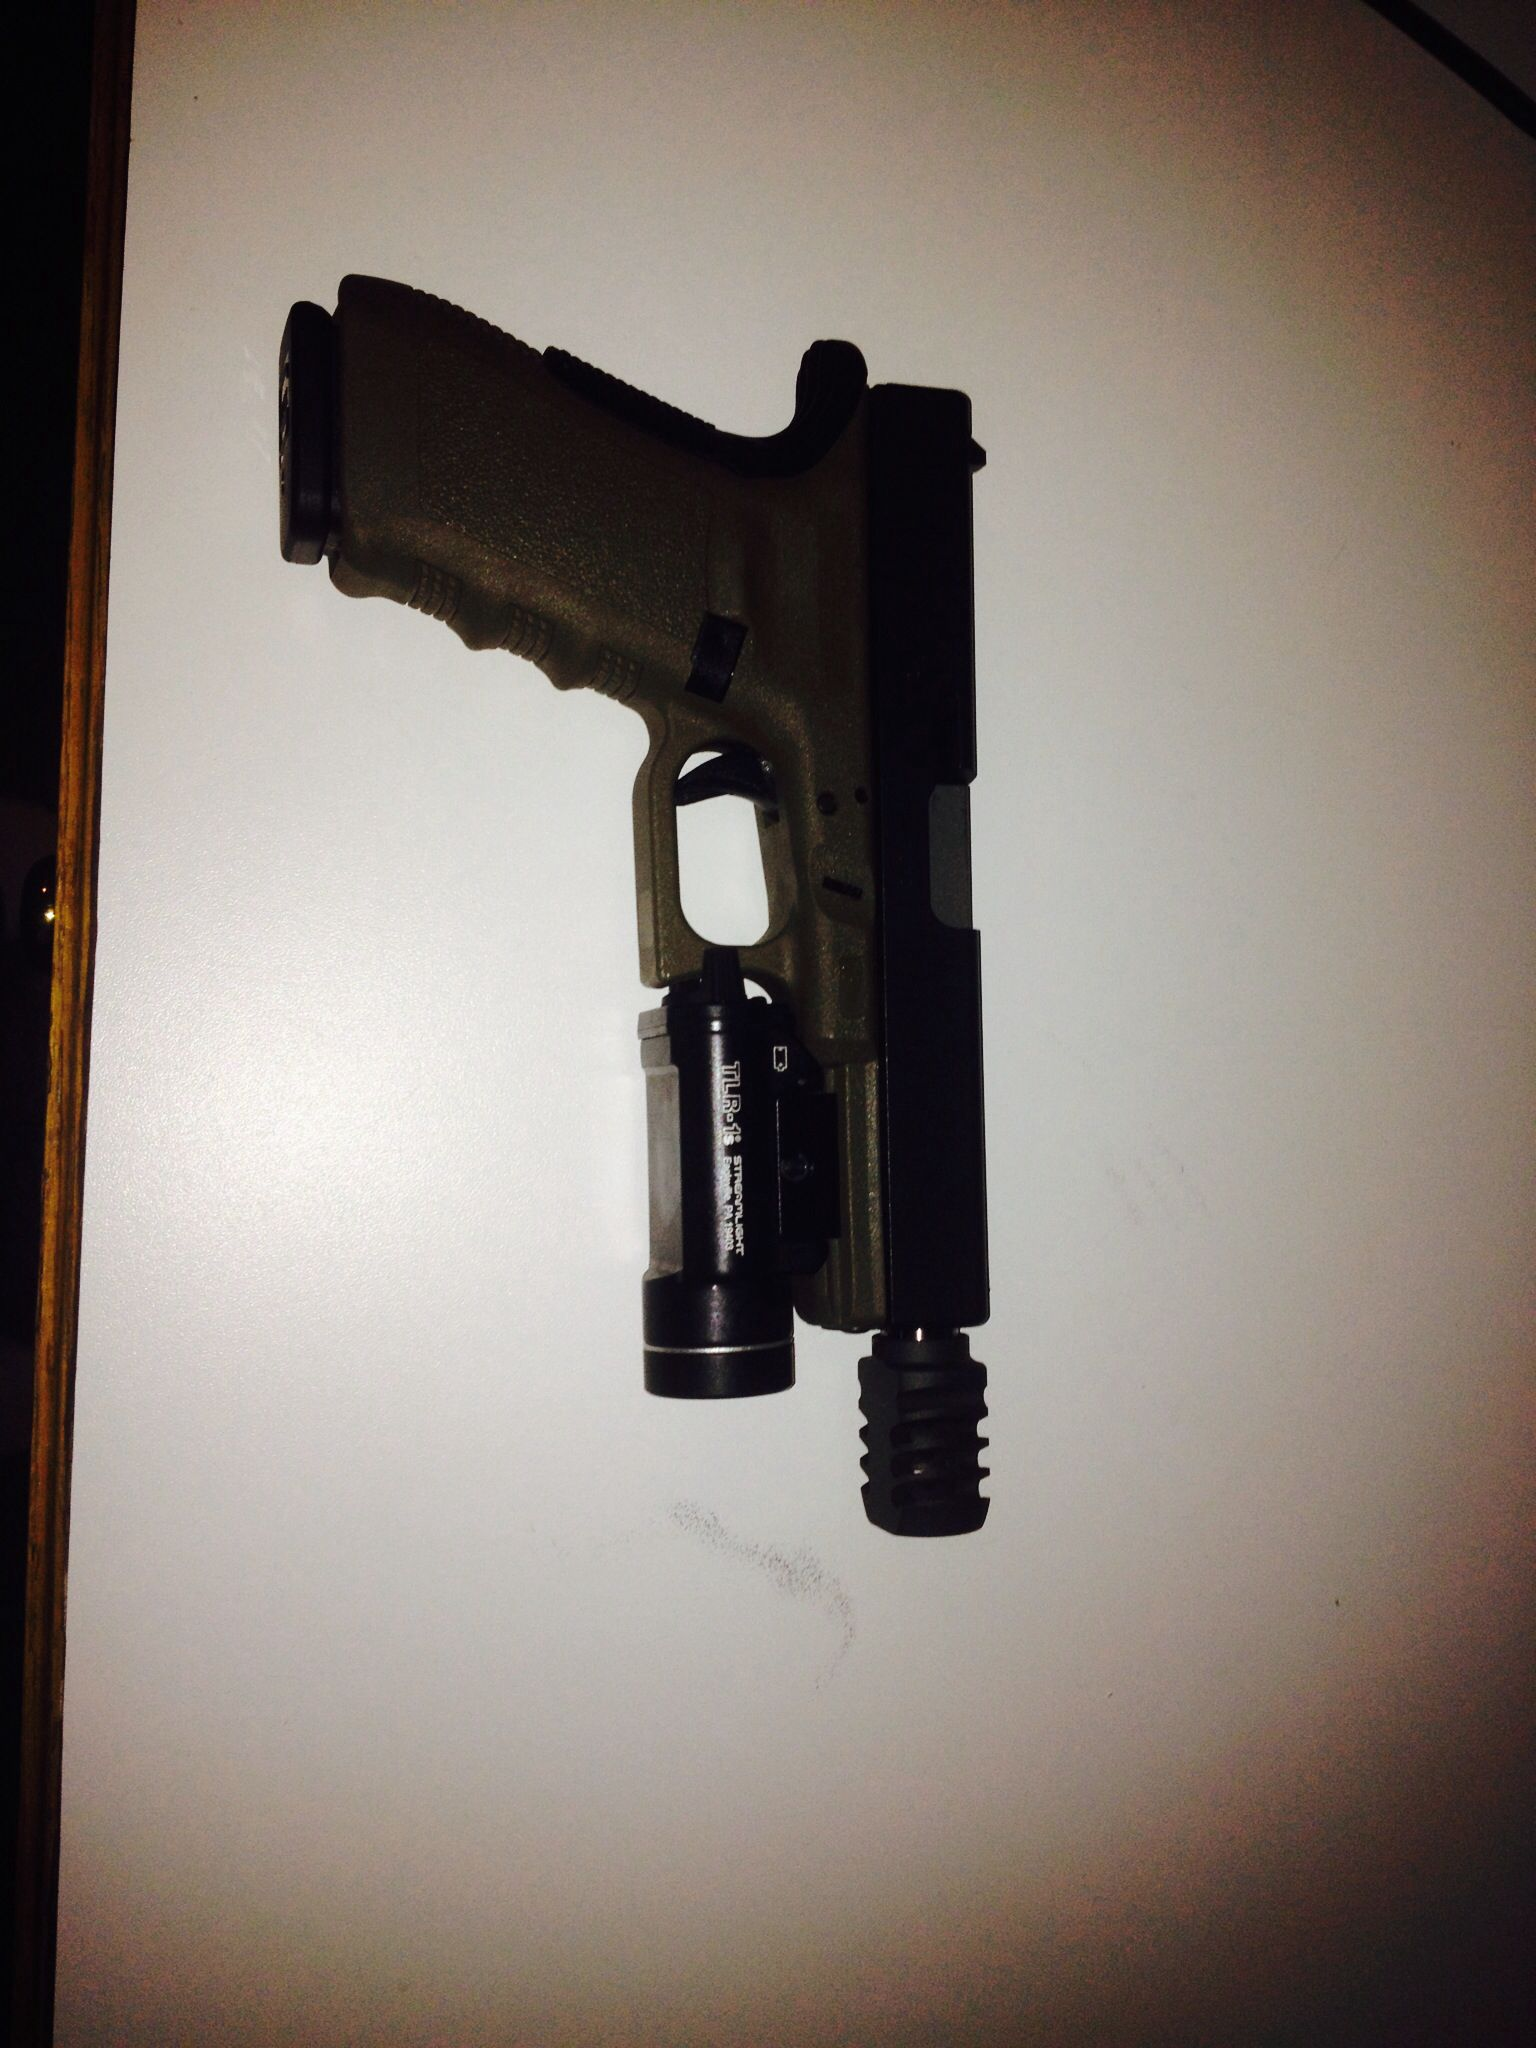 Glock 21 460 Rowland, compensator and stream light TLR-1s